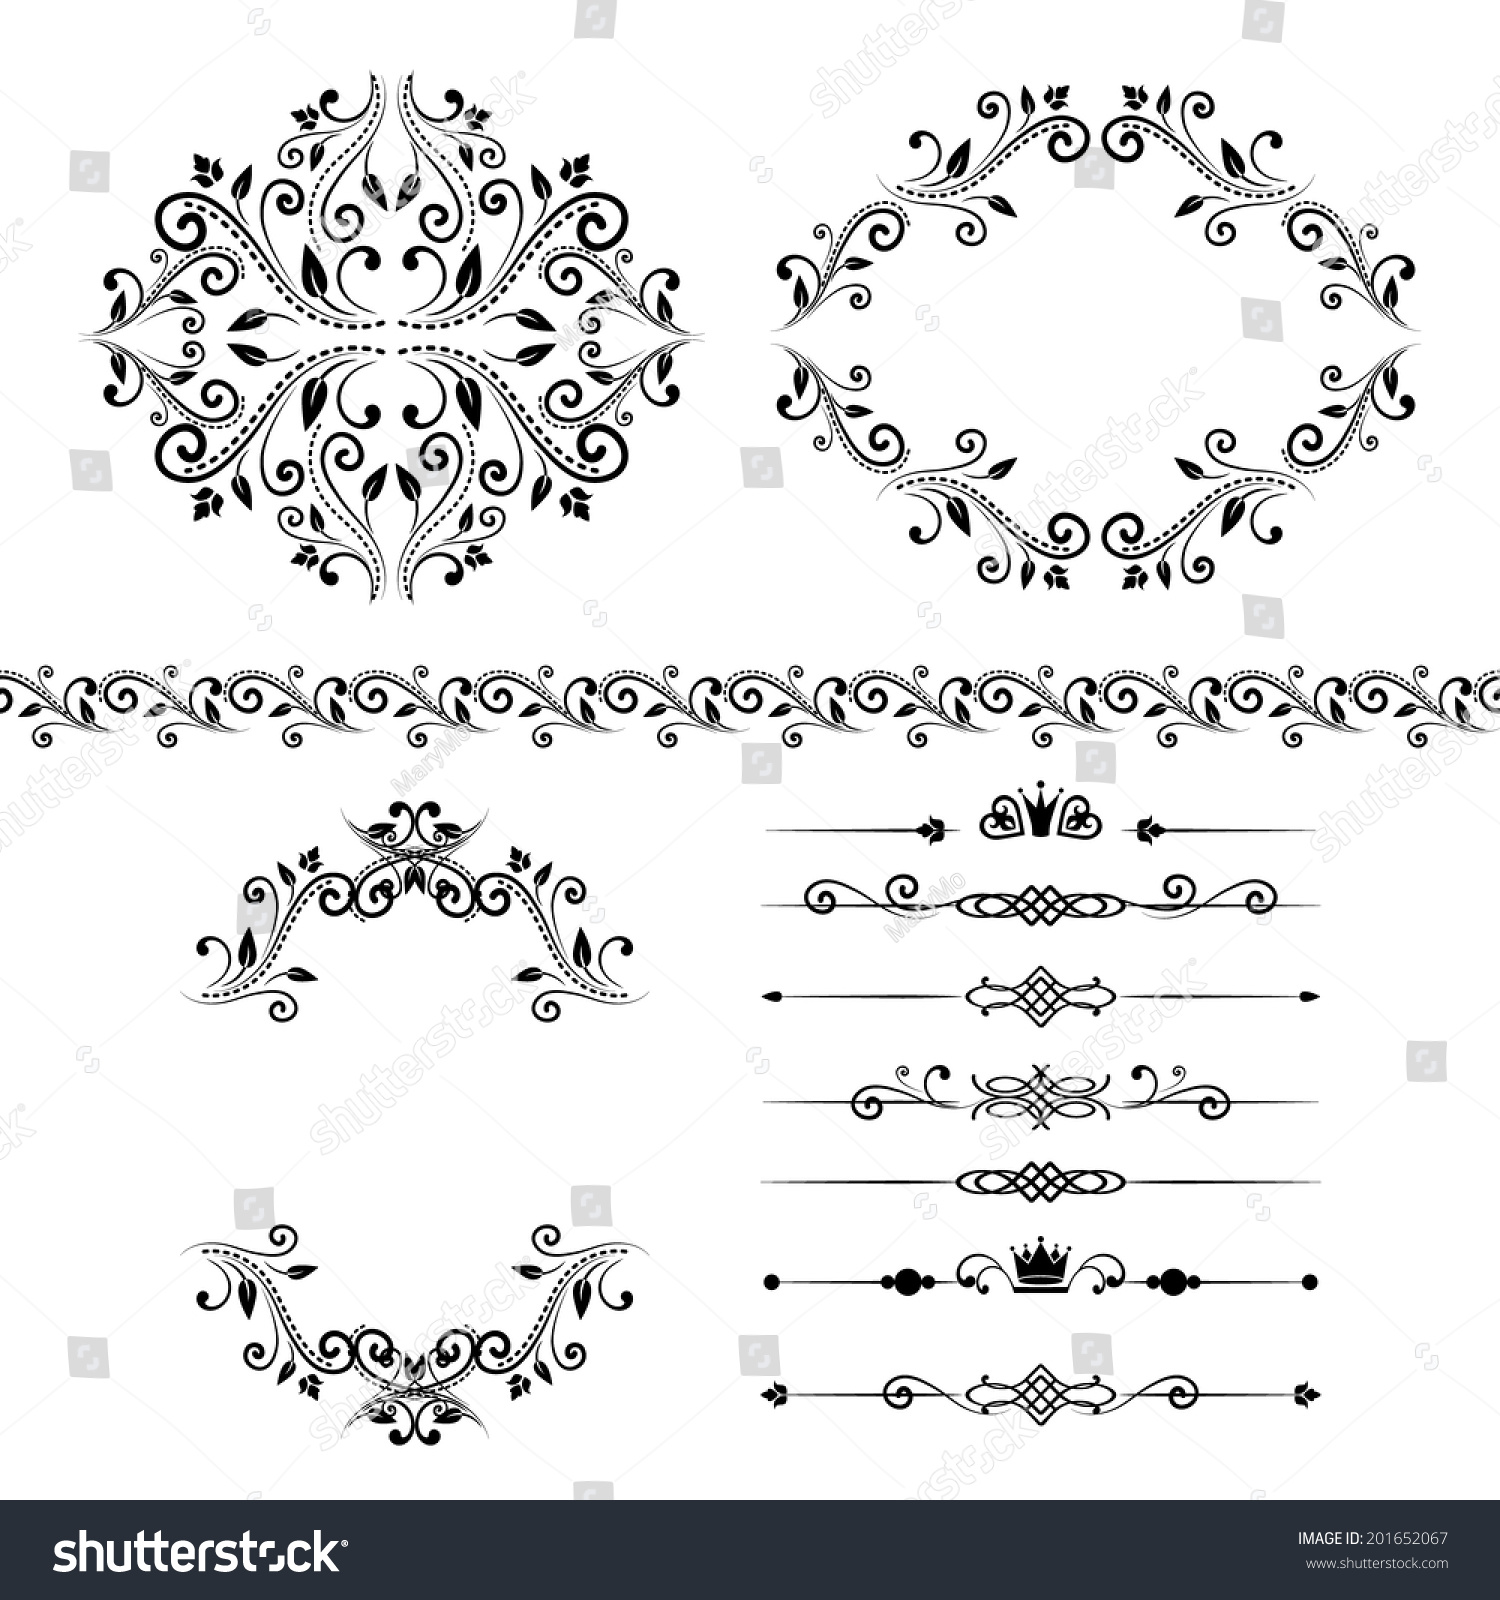 Floral Design Elements Set Ornamental Vintage Border